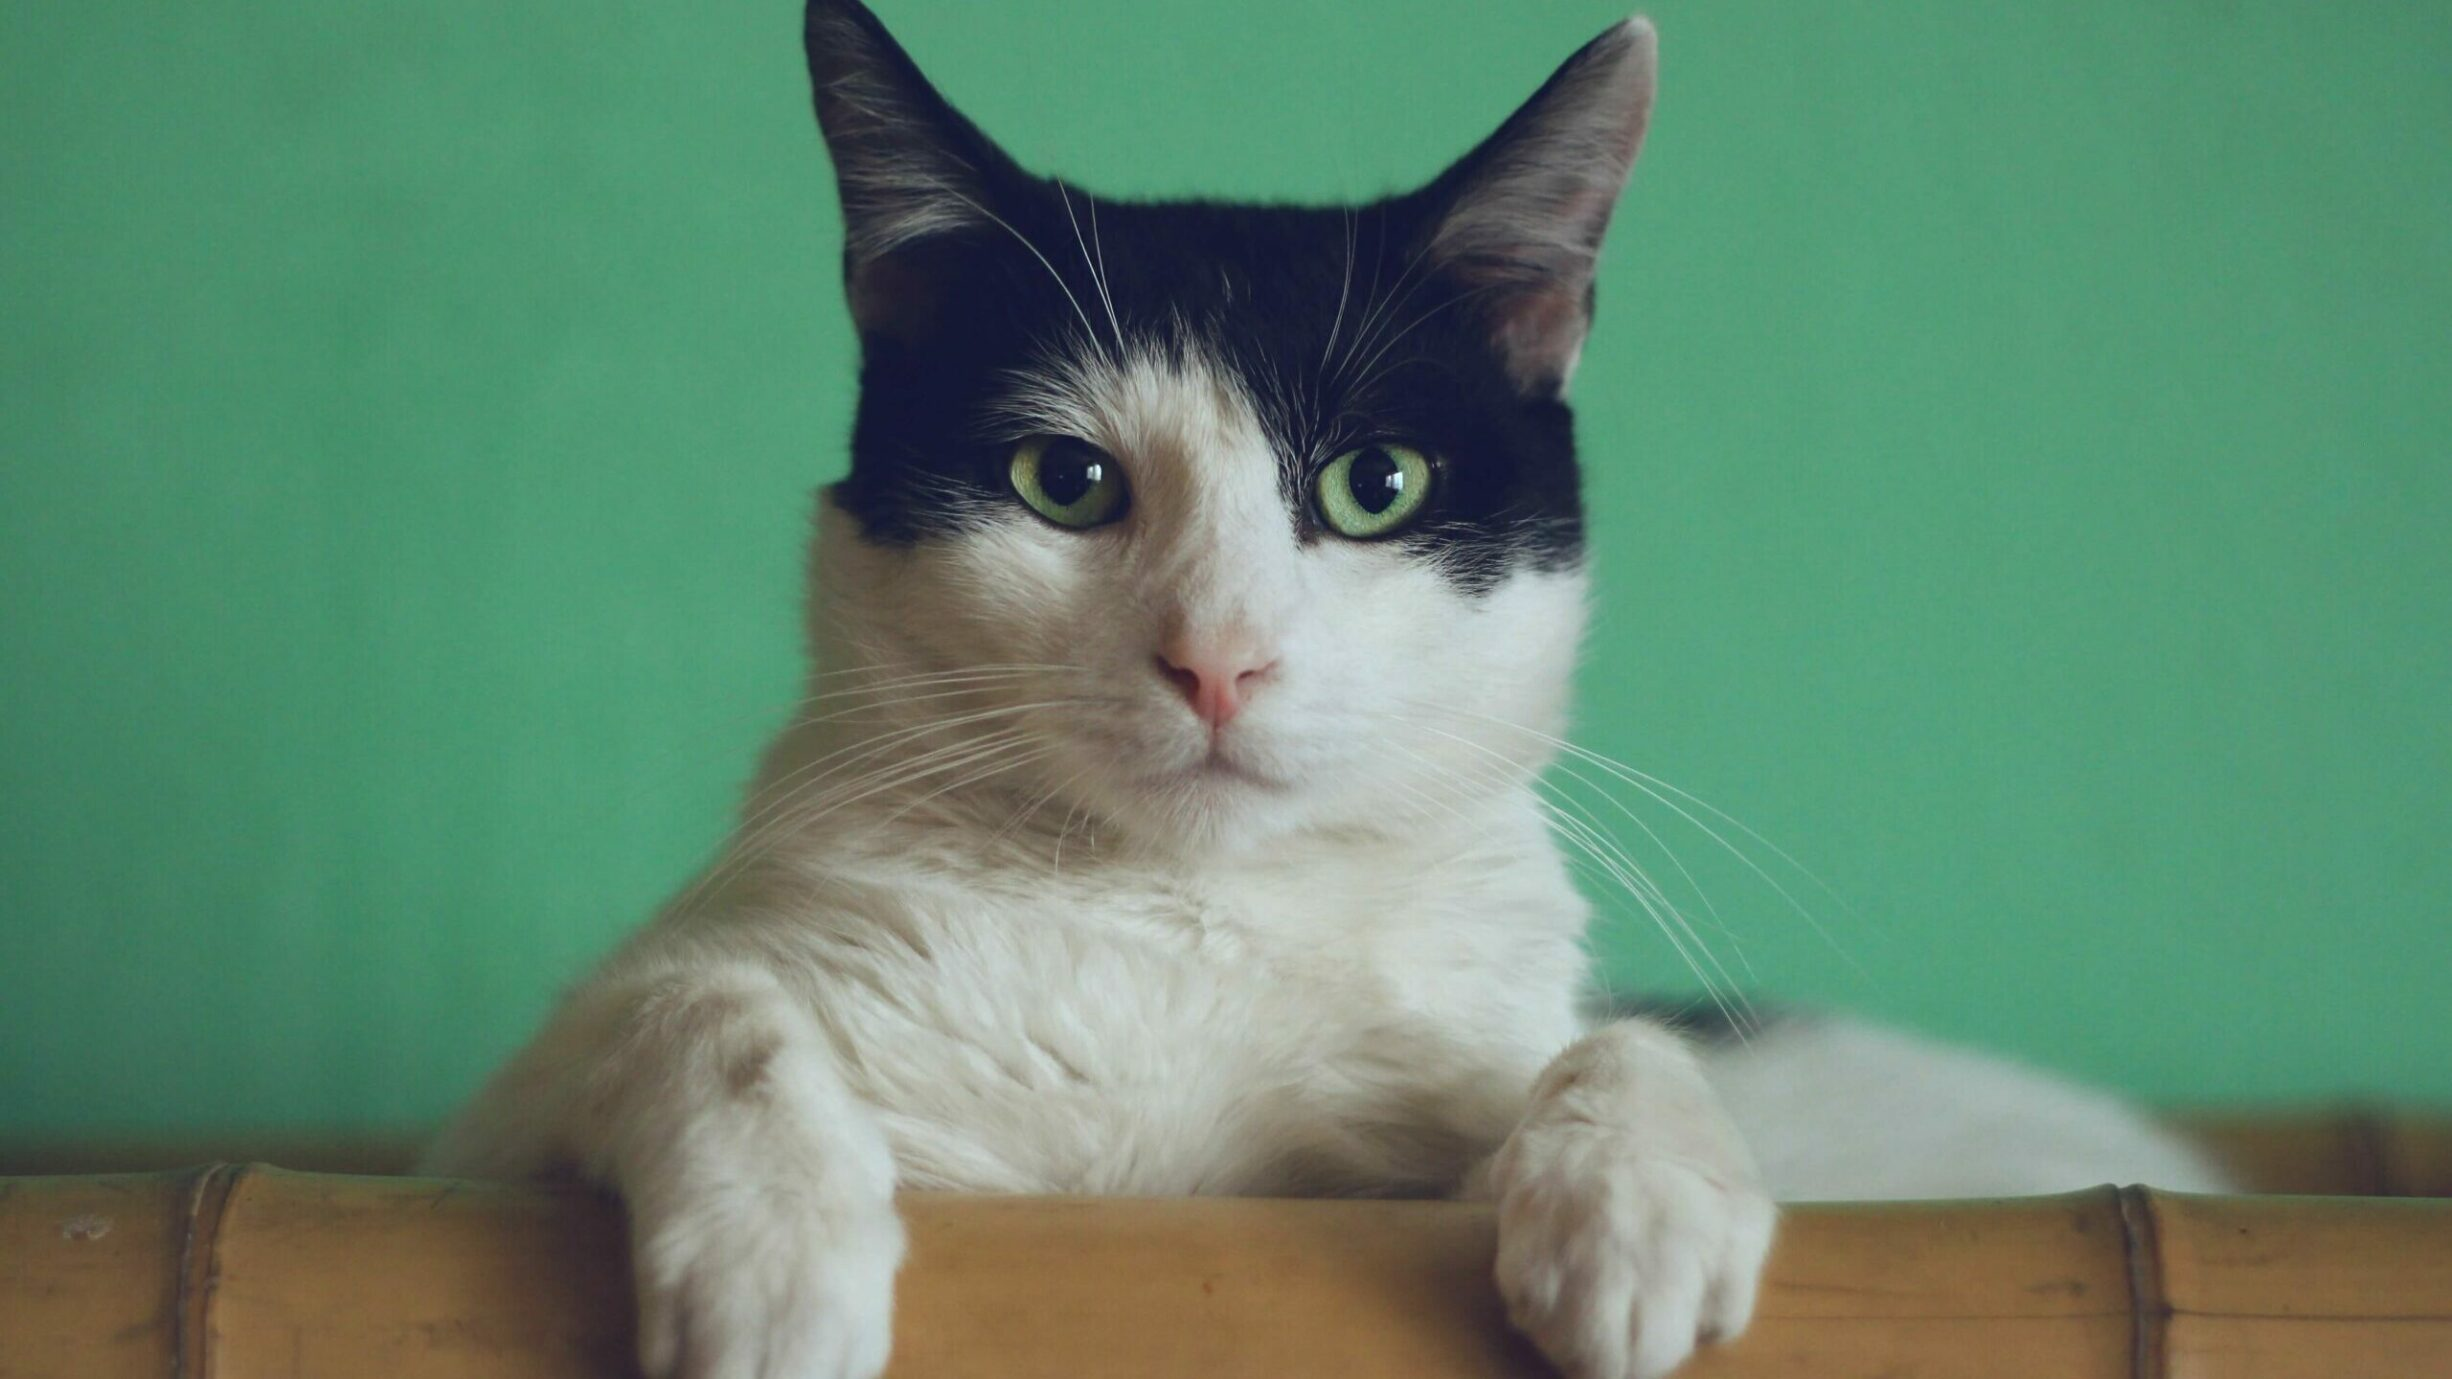 black and white cat with green eyes gazing at camera